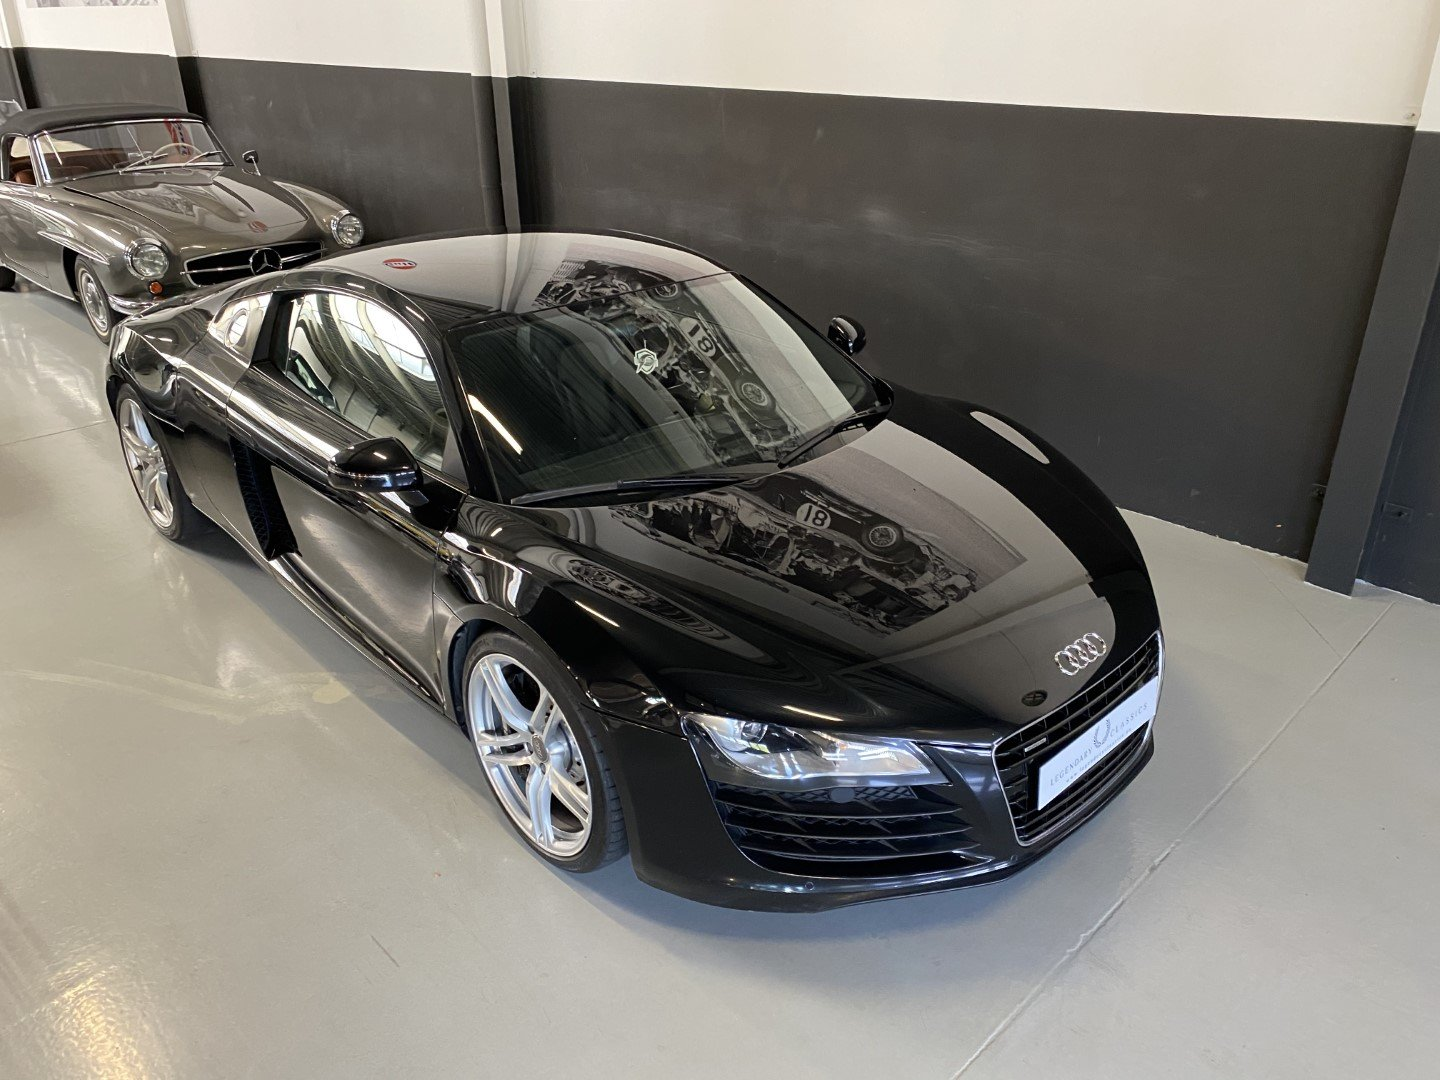 AUDI R8 4.2i V8 Quattro FSI Low mileage (2008) For Sale (picture 2 of 12)